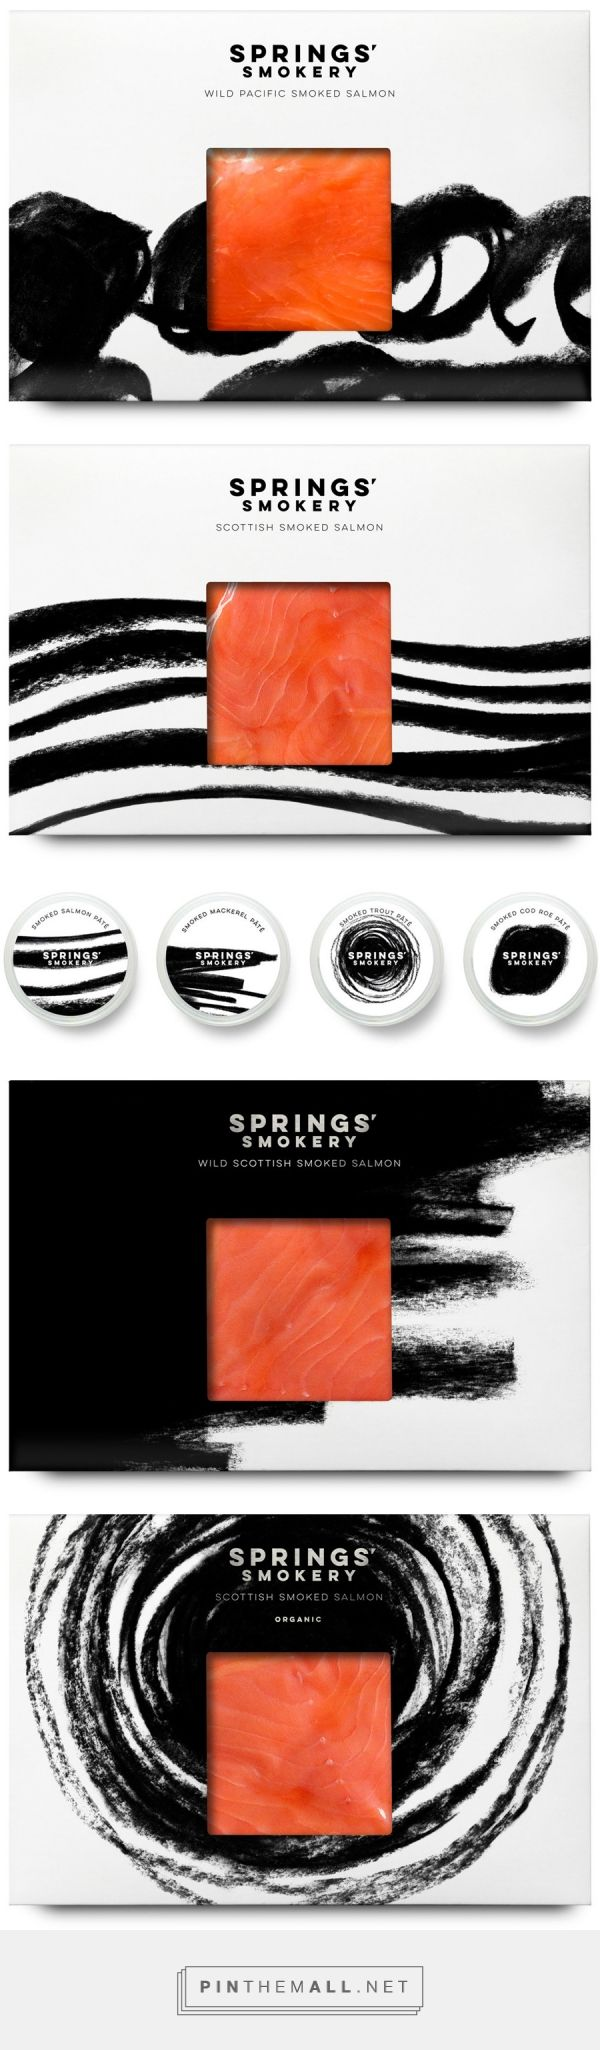 Package Design for Springs' Smokery by Distil Studio via BP&O curated by Packaging Diva PD. The way the salmon pops on this packaging is stellar.